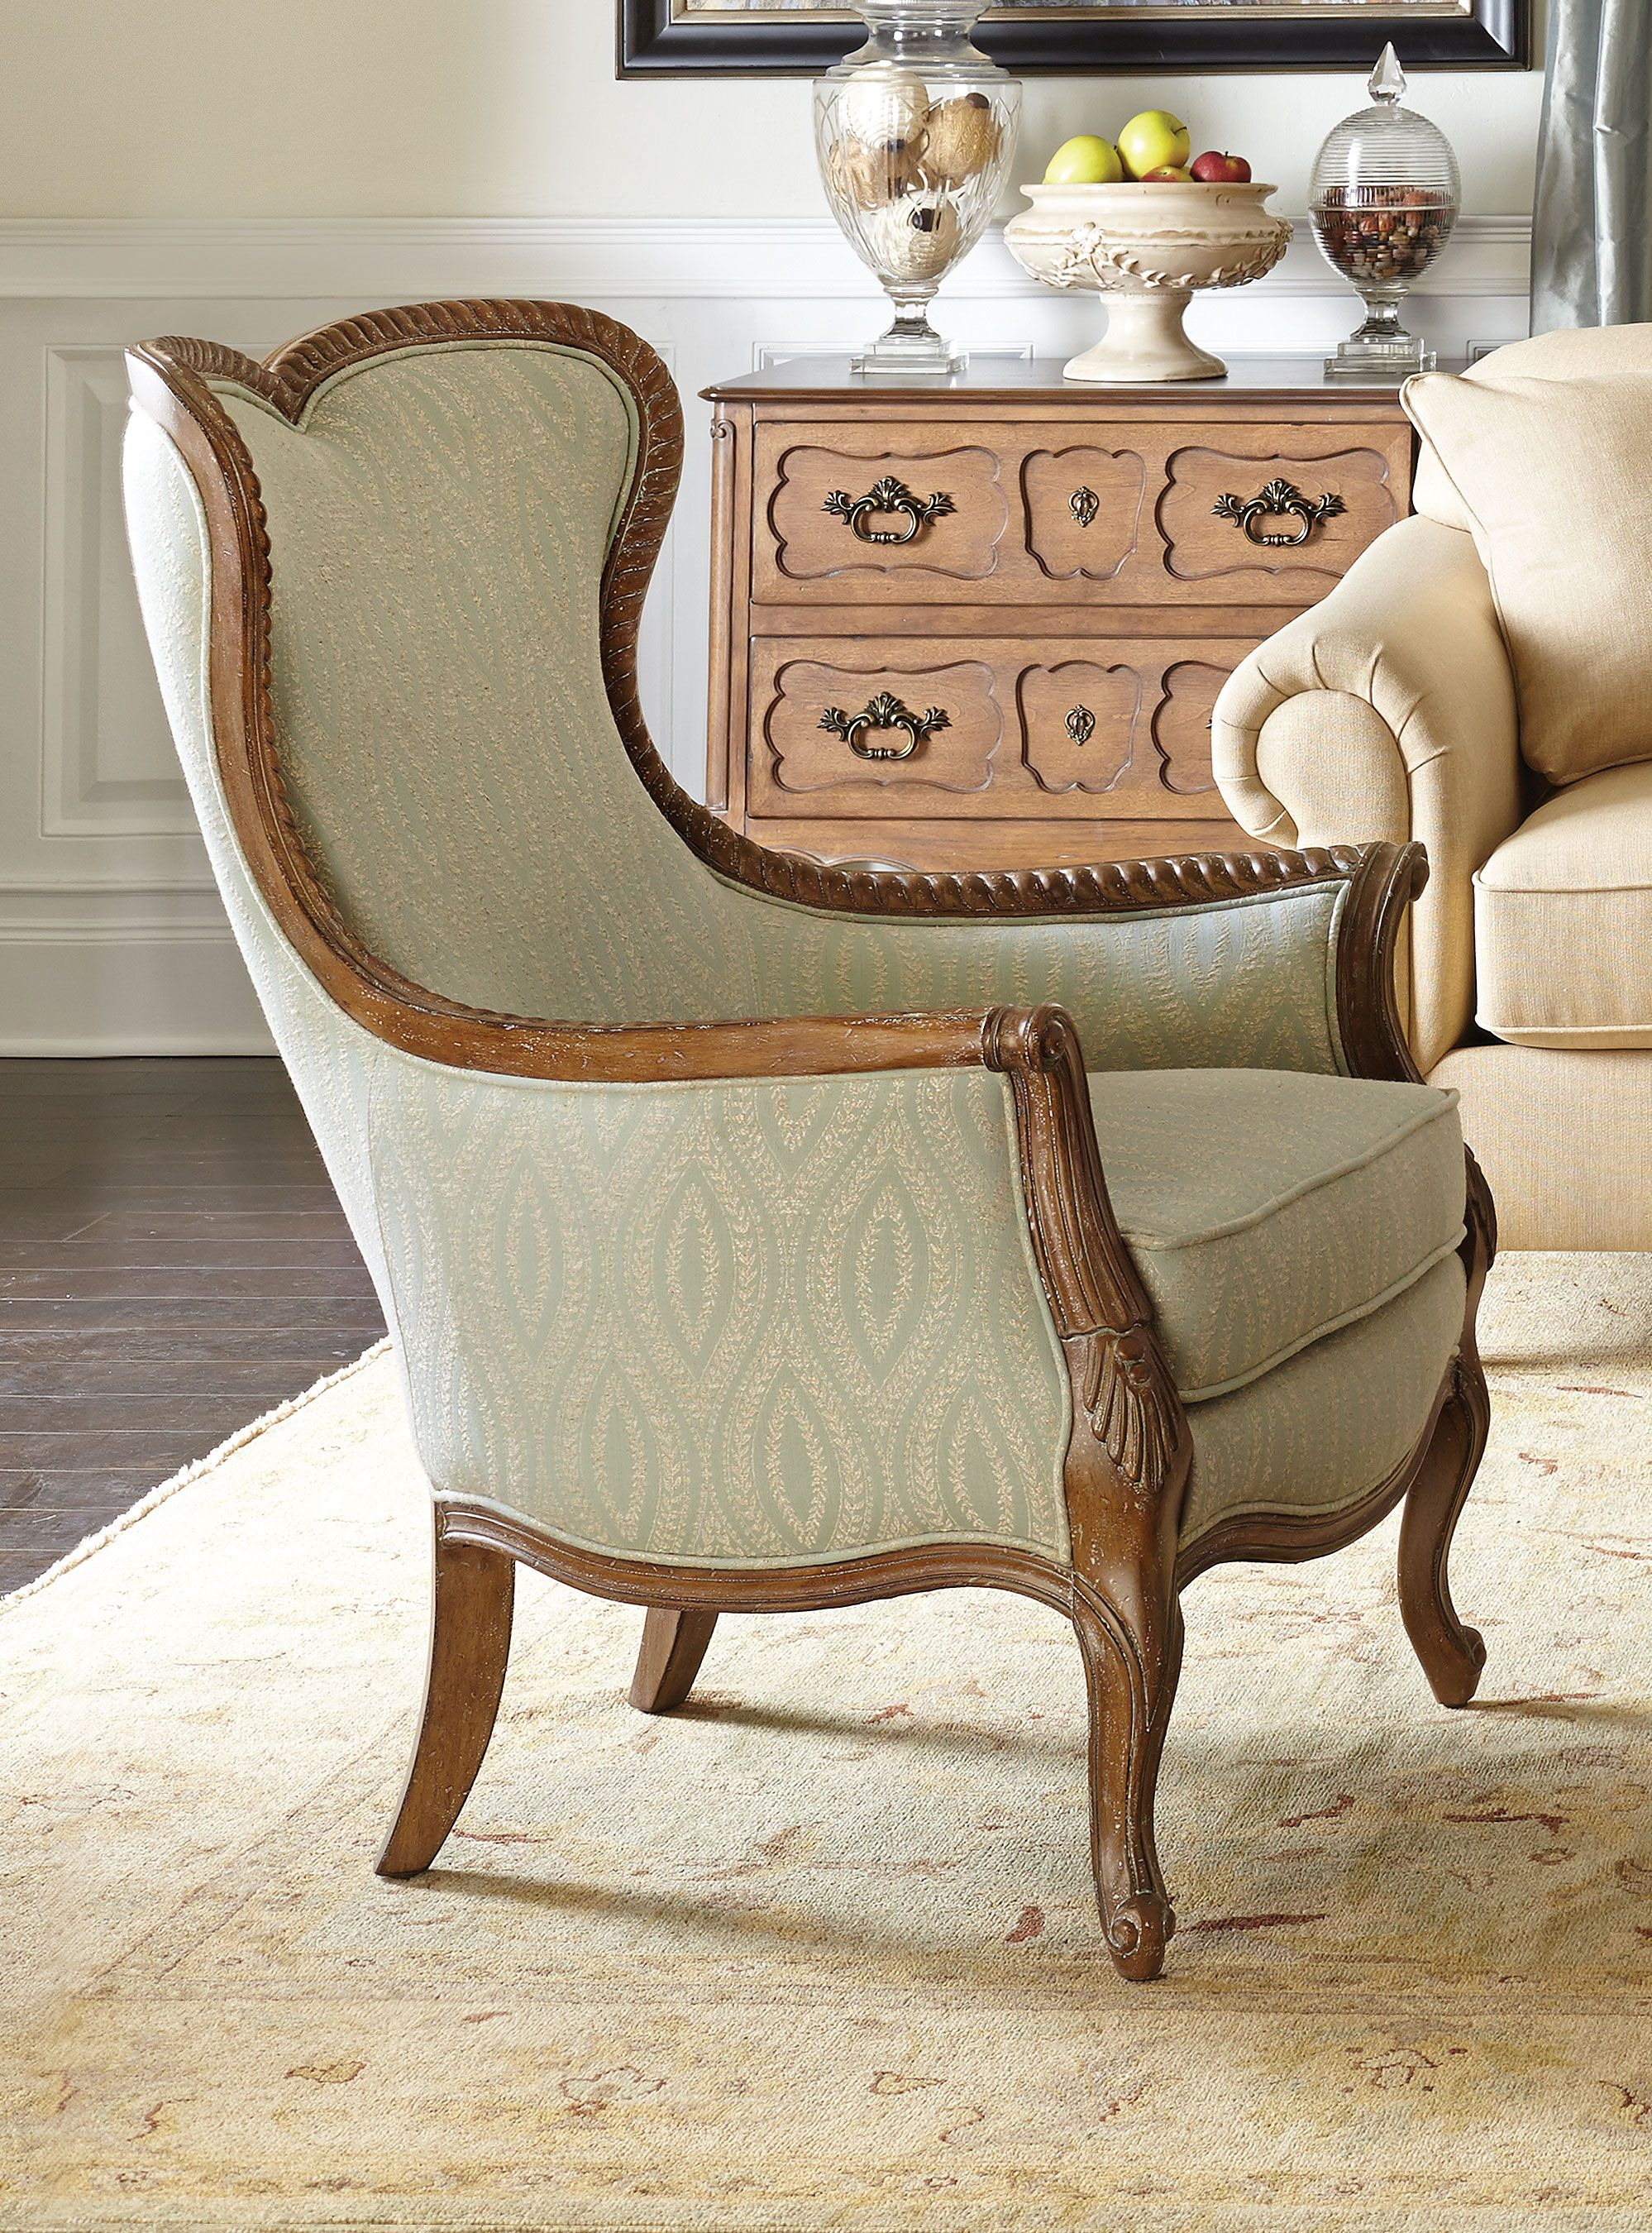 Contemporary Wingback Chairs Design For Your Furniture ...